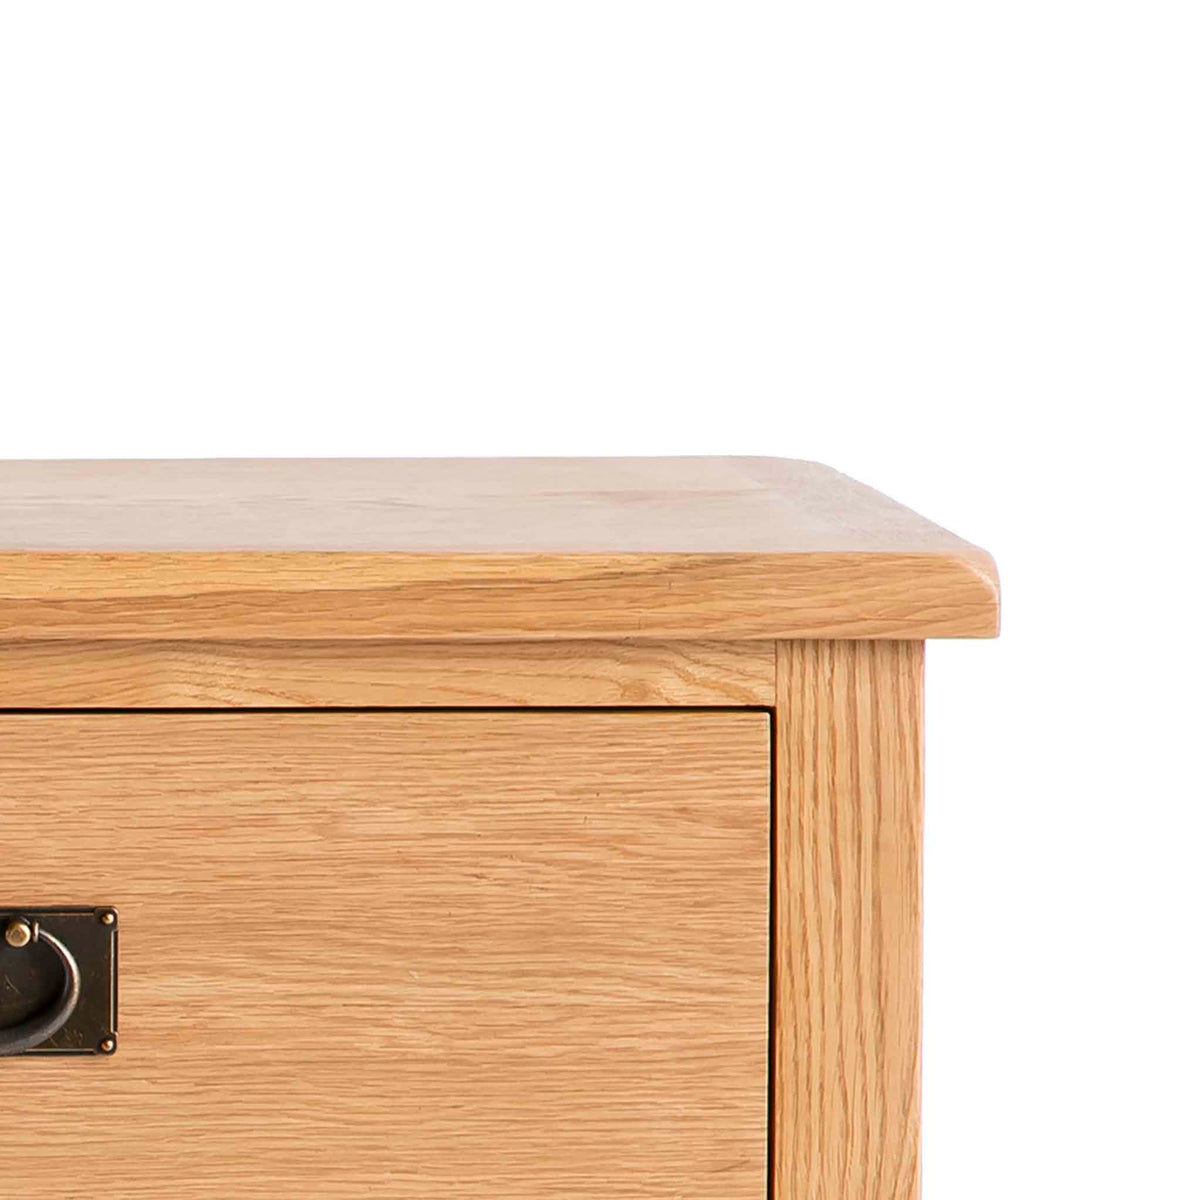 Surrey Oak Large Chest Of Drawers - Close up of top of drawers